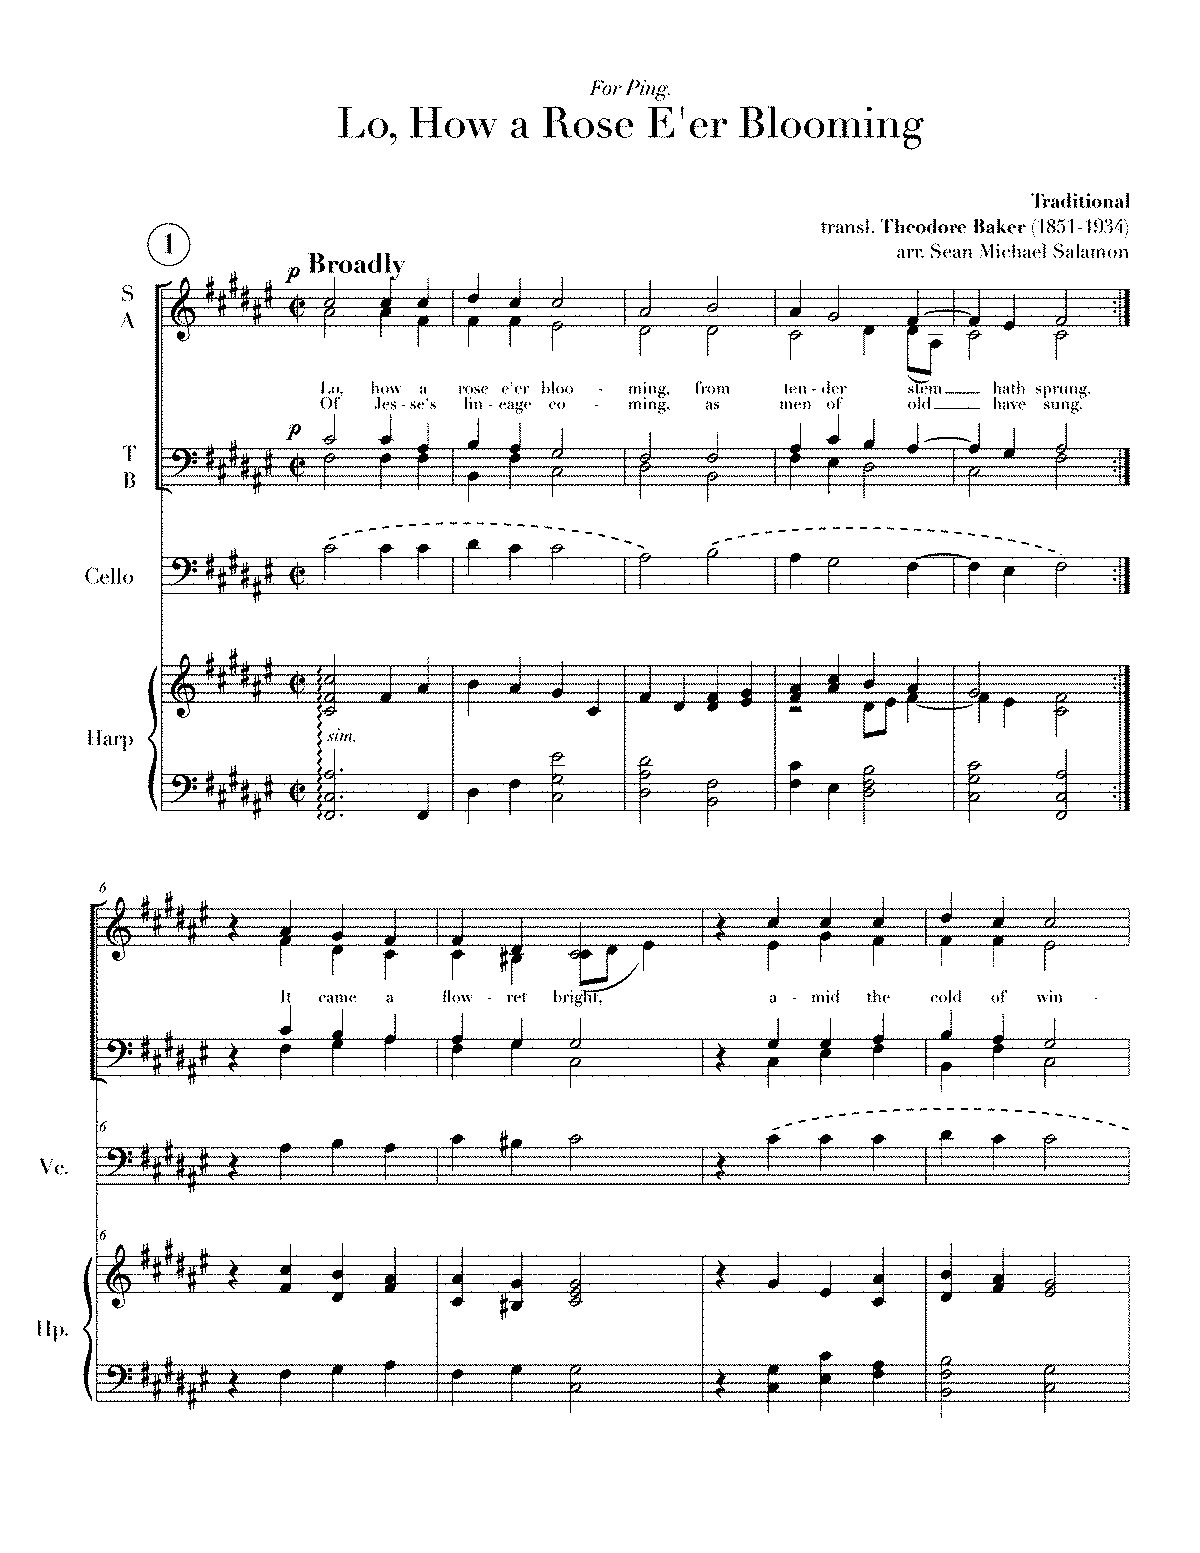 PMLP67213-Lo, how a rose (choral book).pdf